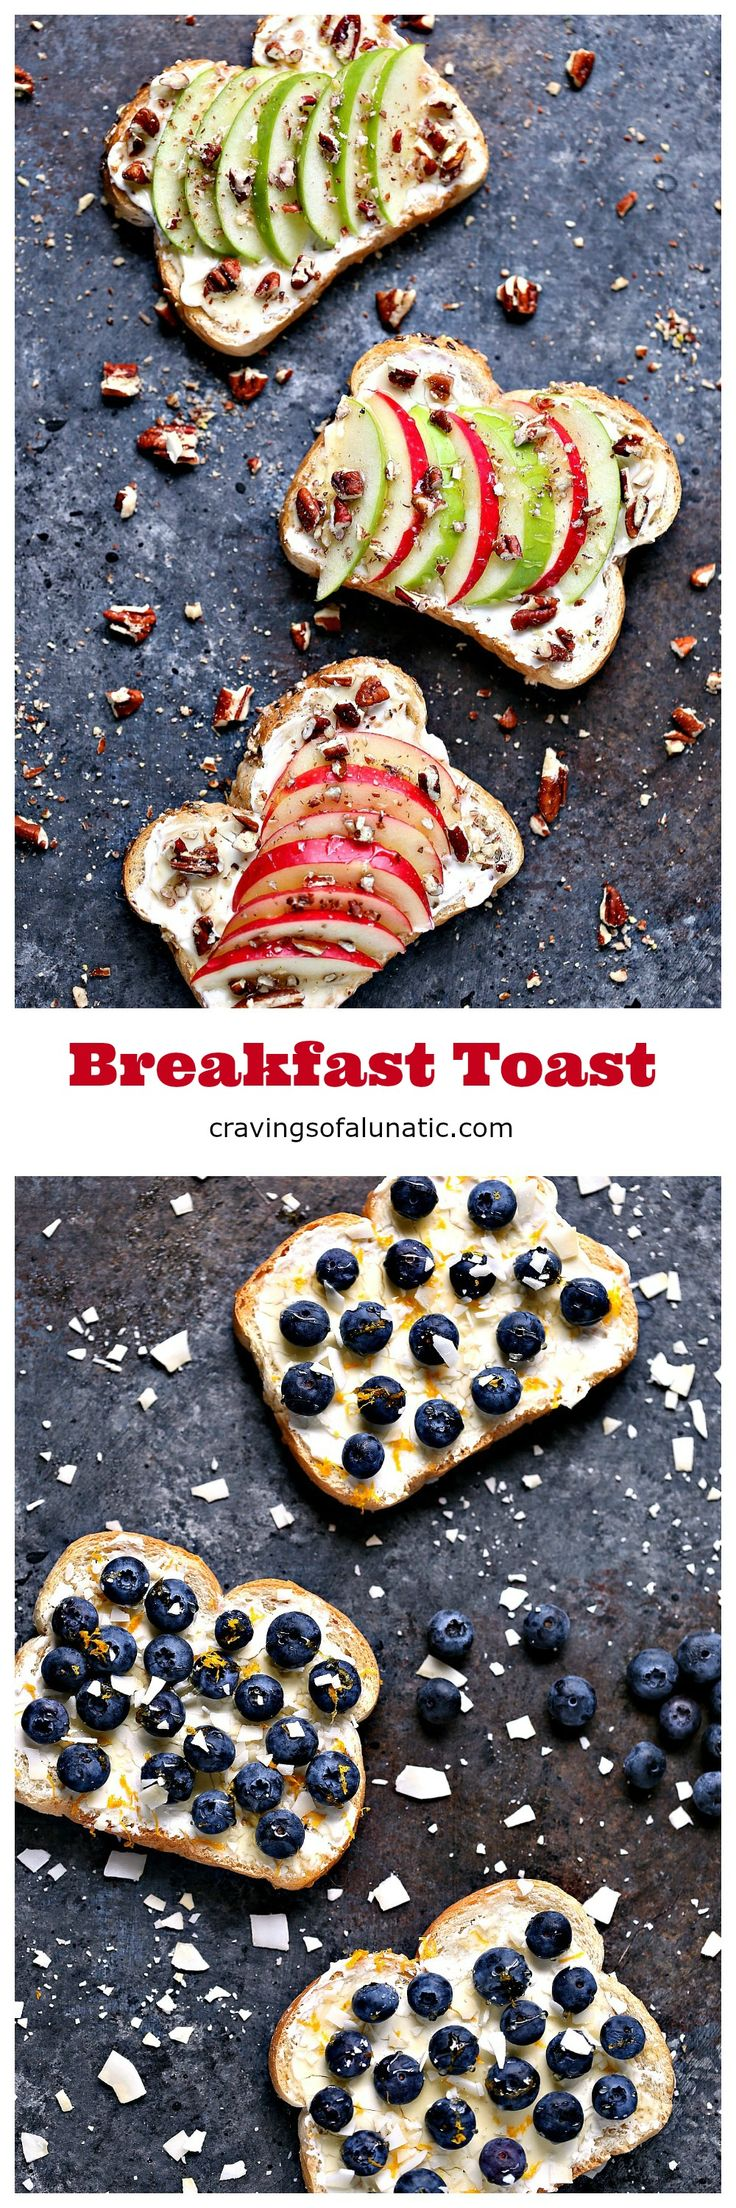 Breakfast Toast- 4 Ways: Breakfast Toast with Cantaloupe, Pistachios, and Honey. Breakfast Toast with Apples, Pecans, and Honey. Breakfast Toast with Raspberries, Coconut, and Honey. Breakfast Toast with Blueberries, Coconut Chips, and Honey. Visit cravingsofalunatic.com for more great recipes. #sponsored #EHYWTF